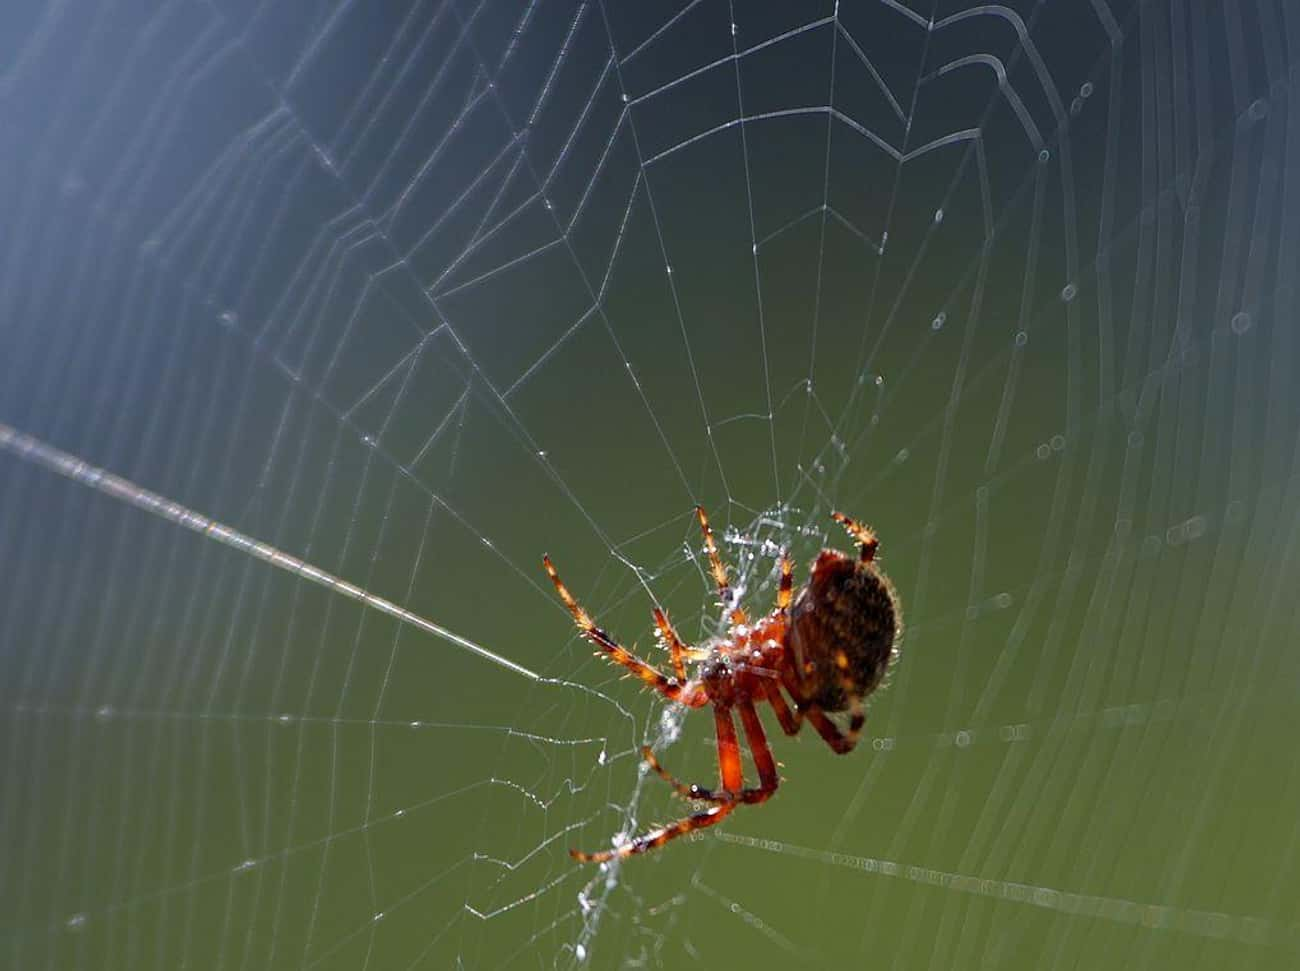 Spiders Can Measure Their Prey And Predators Just By Sensing Them